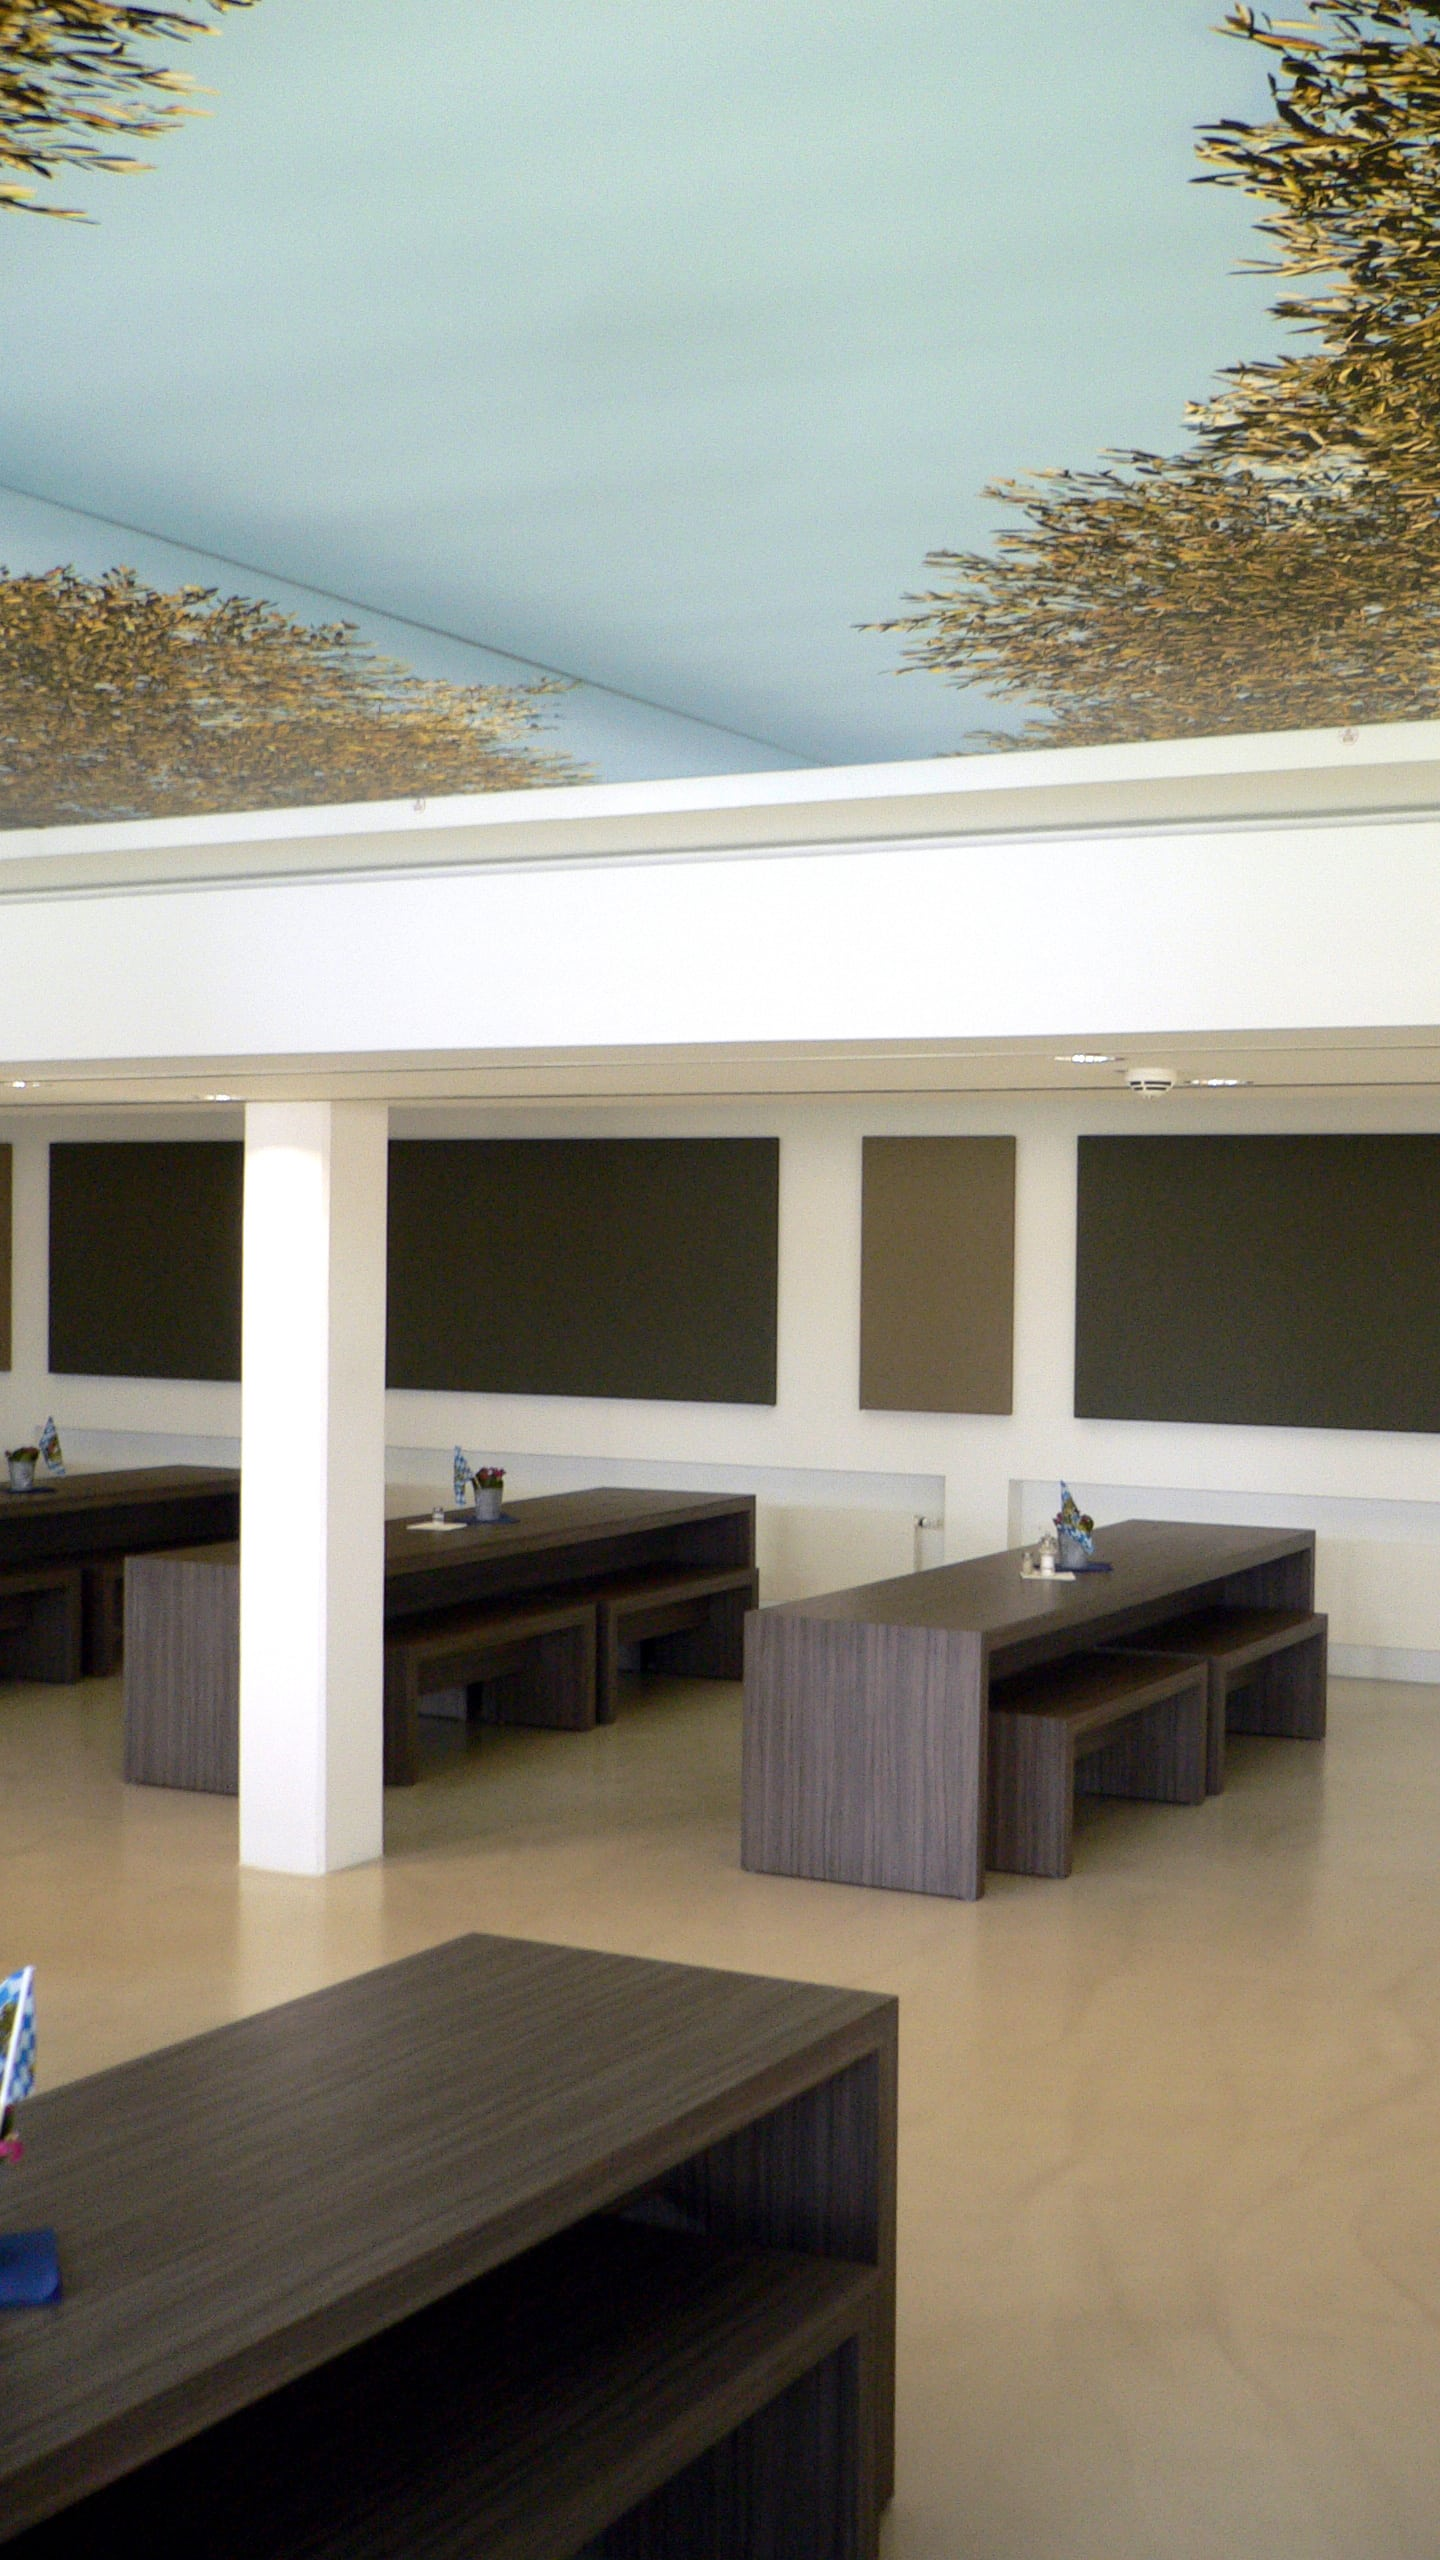 Cafeteria - View 2